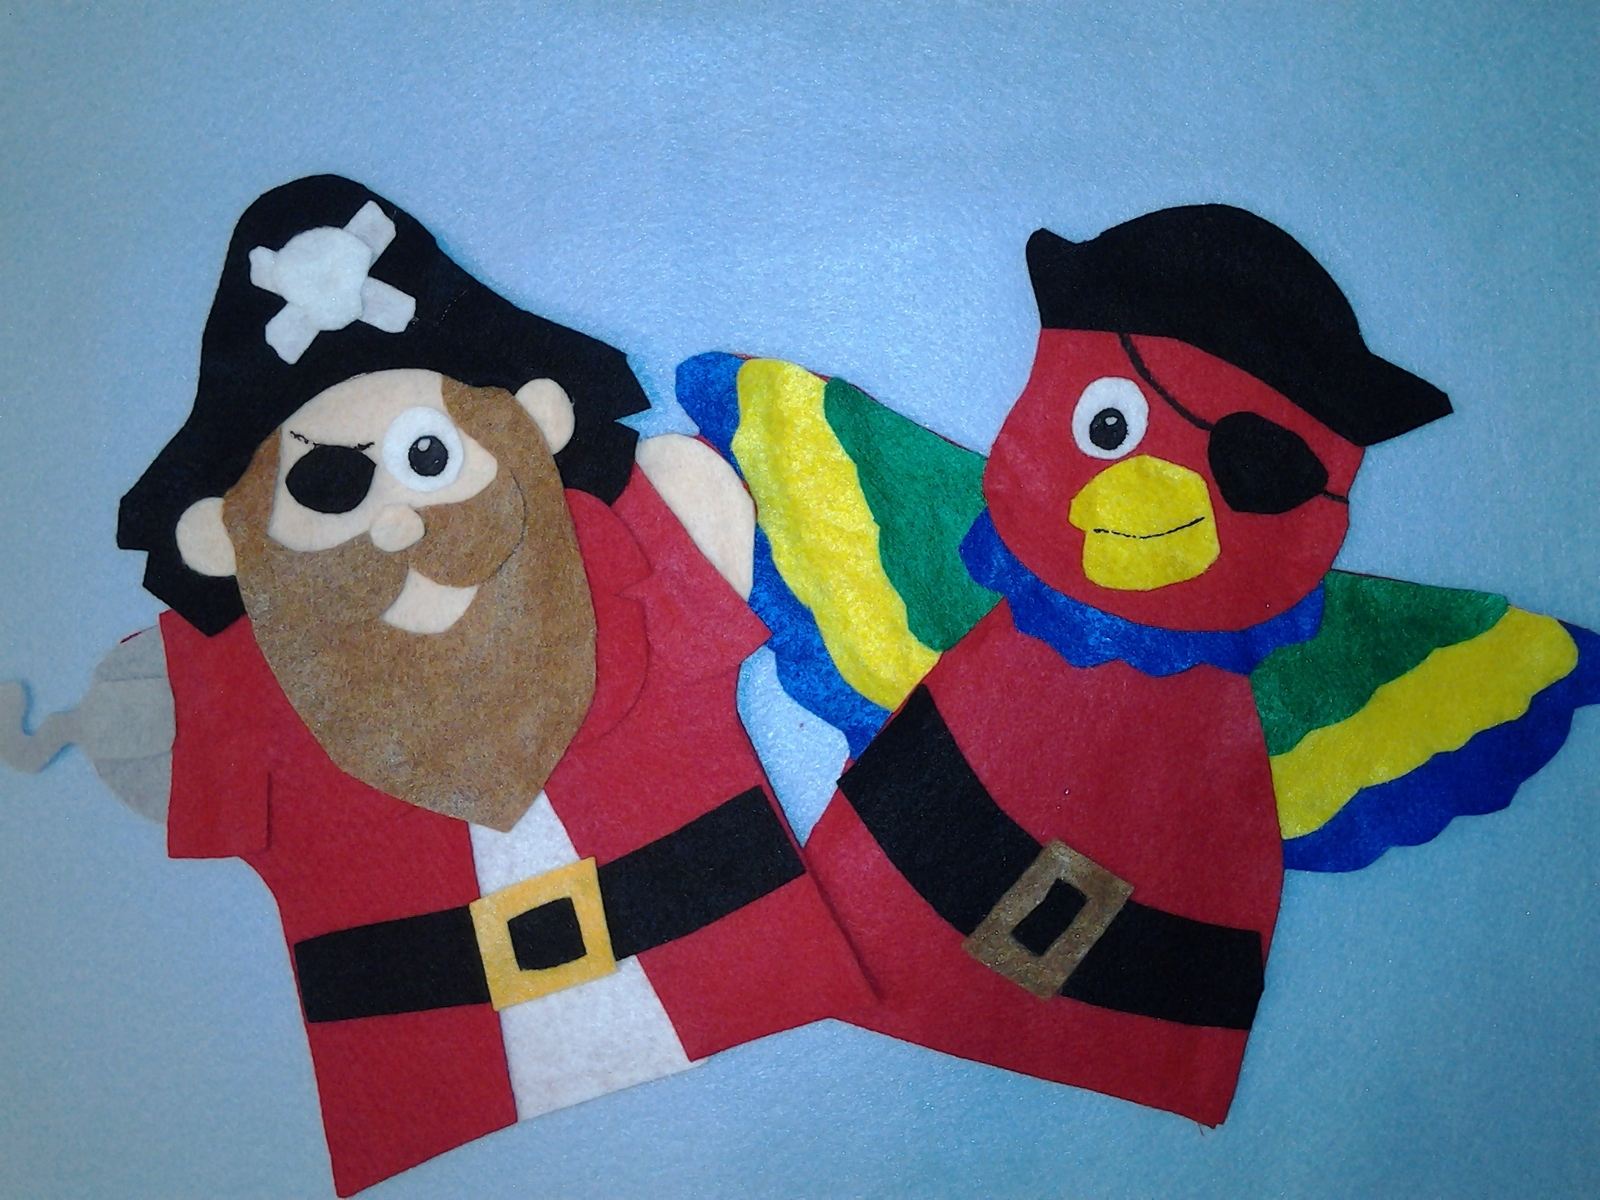 Pirate and Parrot Hand Puppets